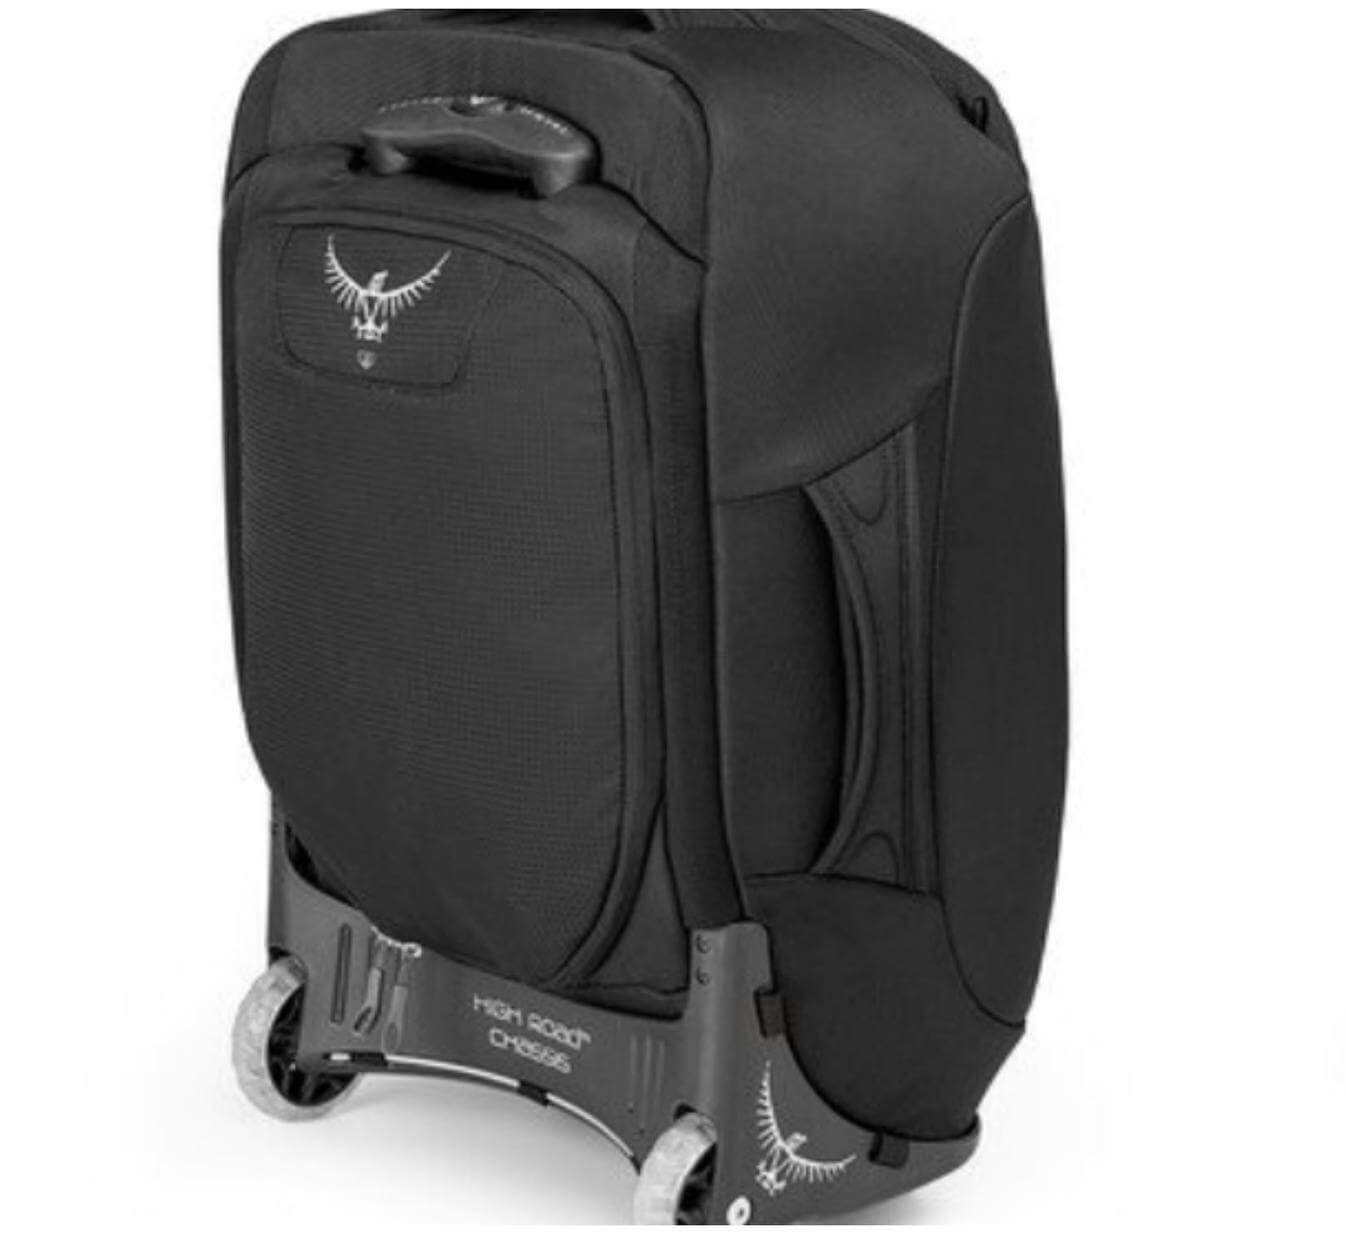 osprey sojourn backpack with wheels